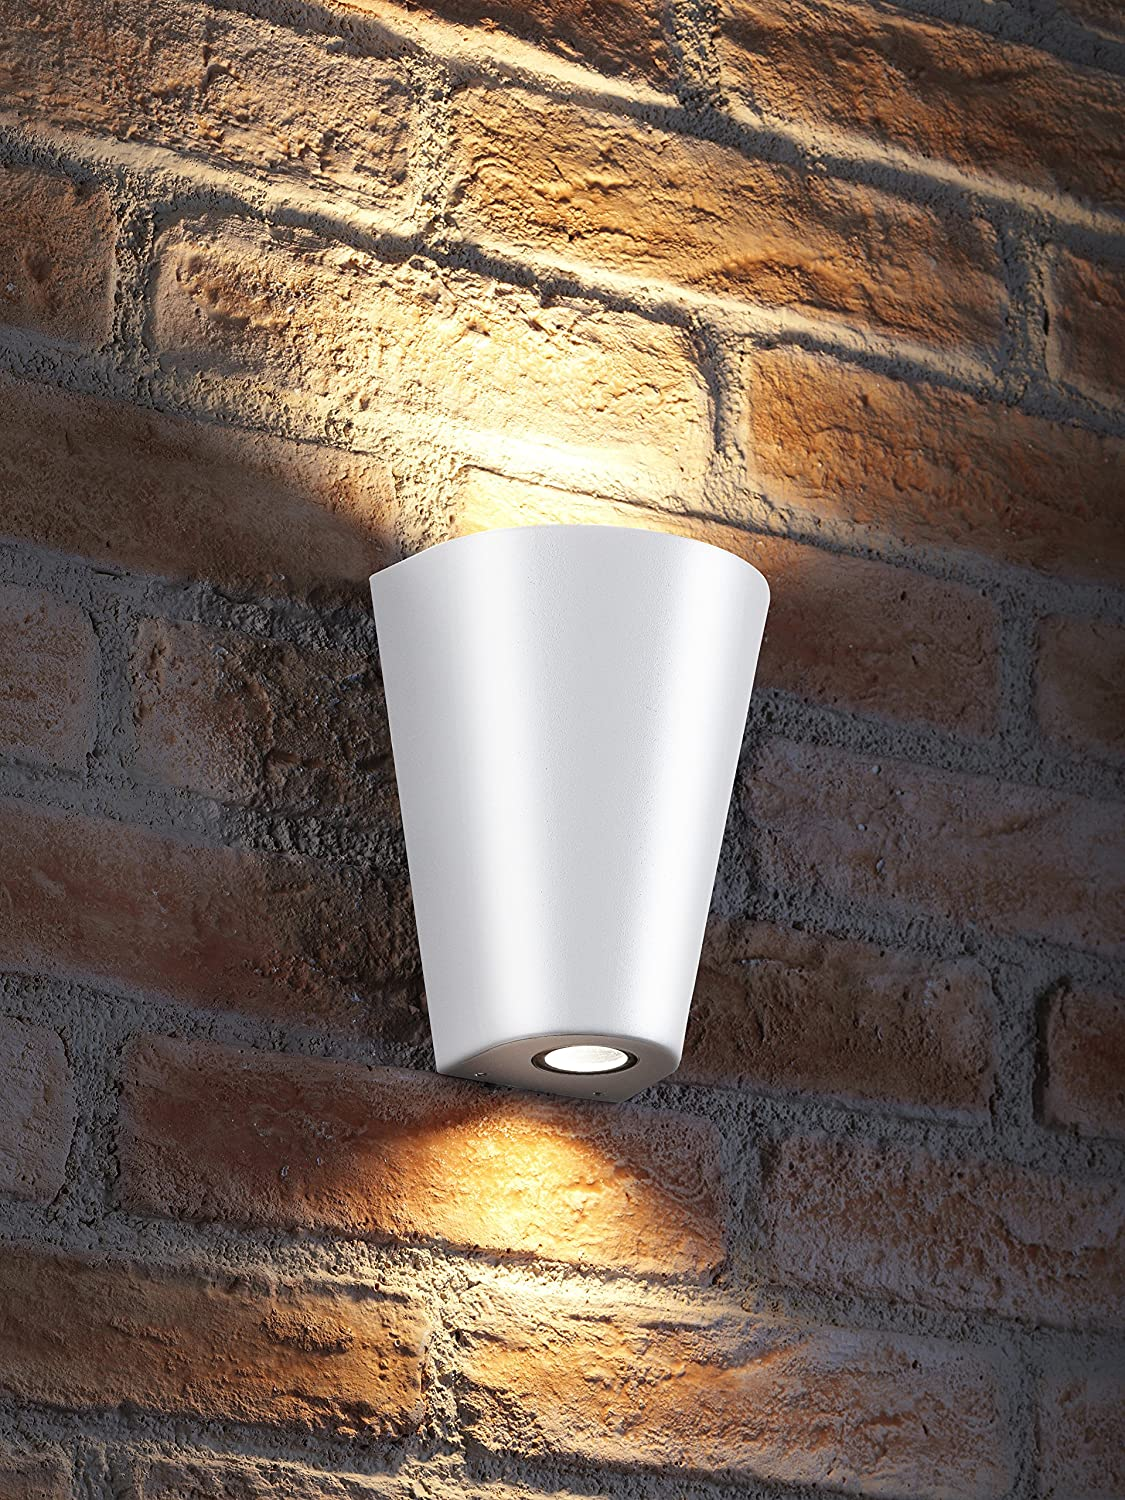 Auraglow Indoor/Outdoor Double Wall Up & Down Light - White - Warm White LED Bulbs Included